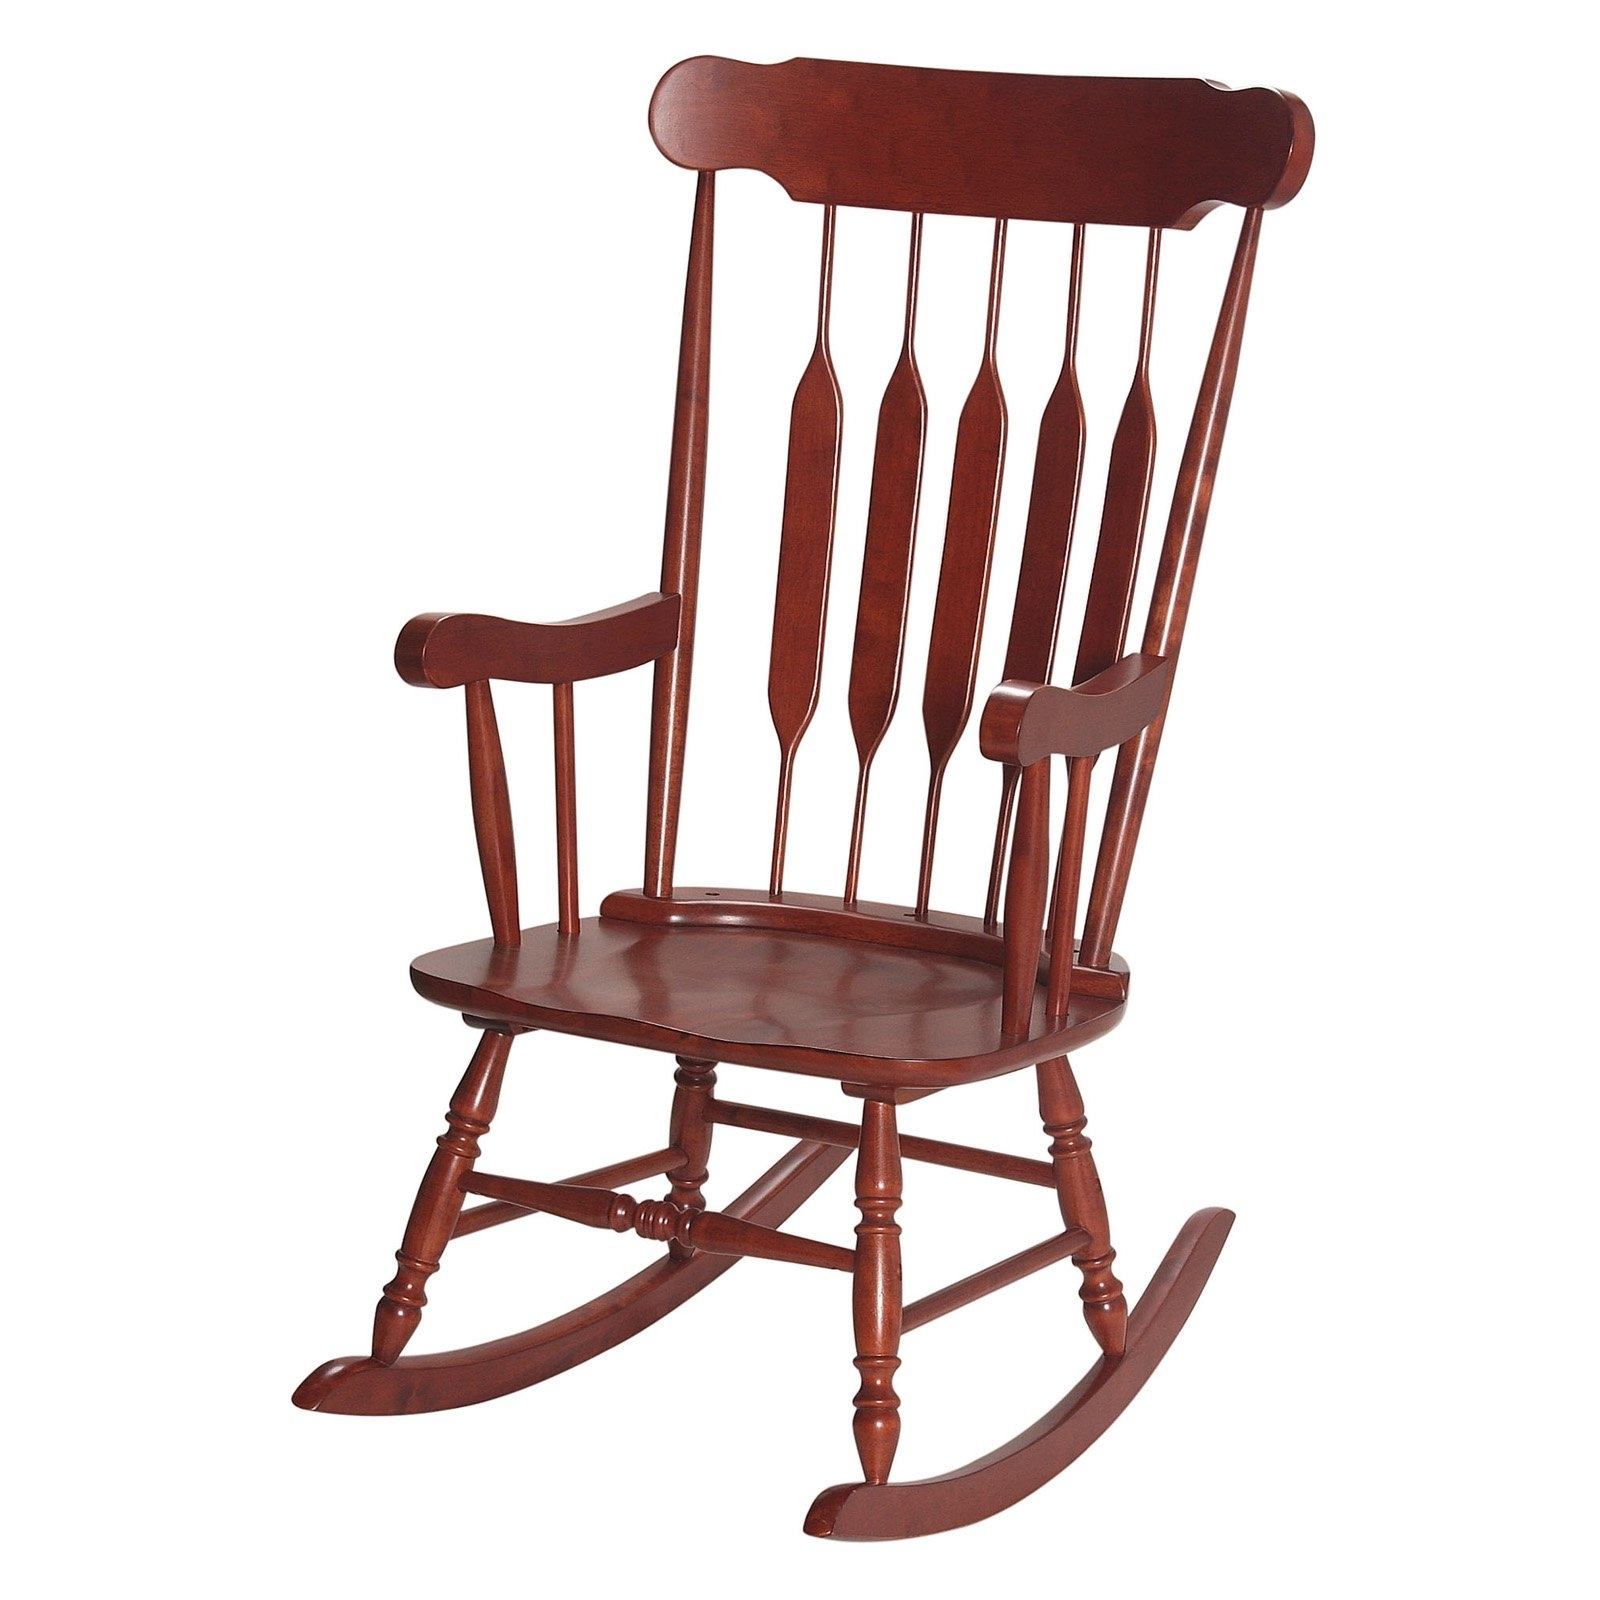 Famous Rocking Chairs At Wayfair Throughout Gift Mark Adult Rocking Chair – Cherry – Walmart (View 6 of 20)